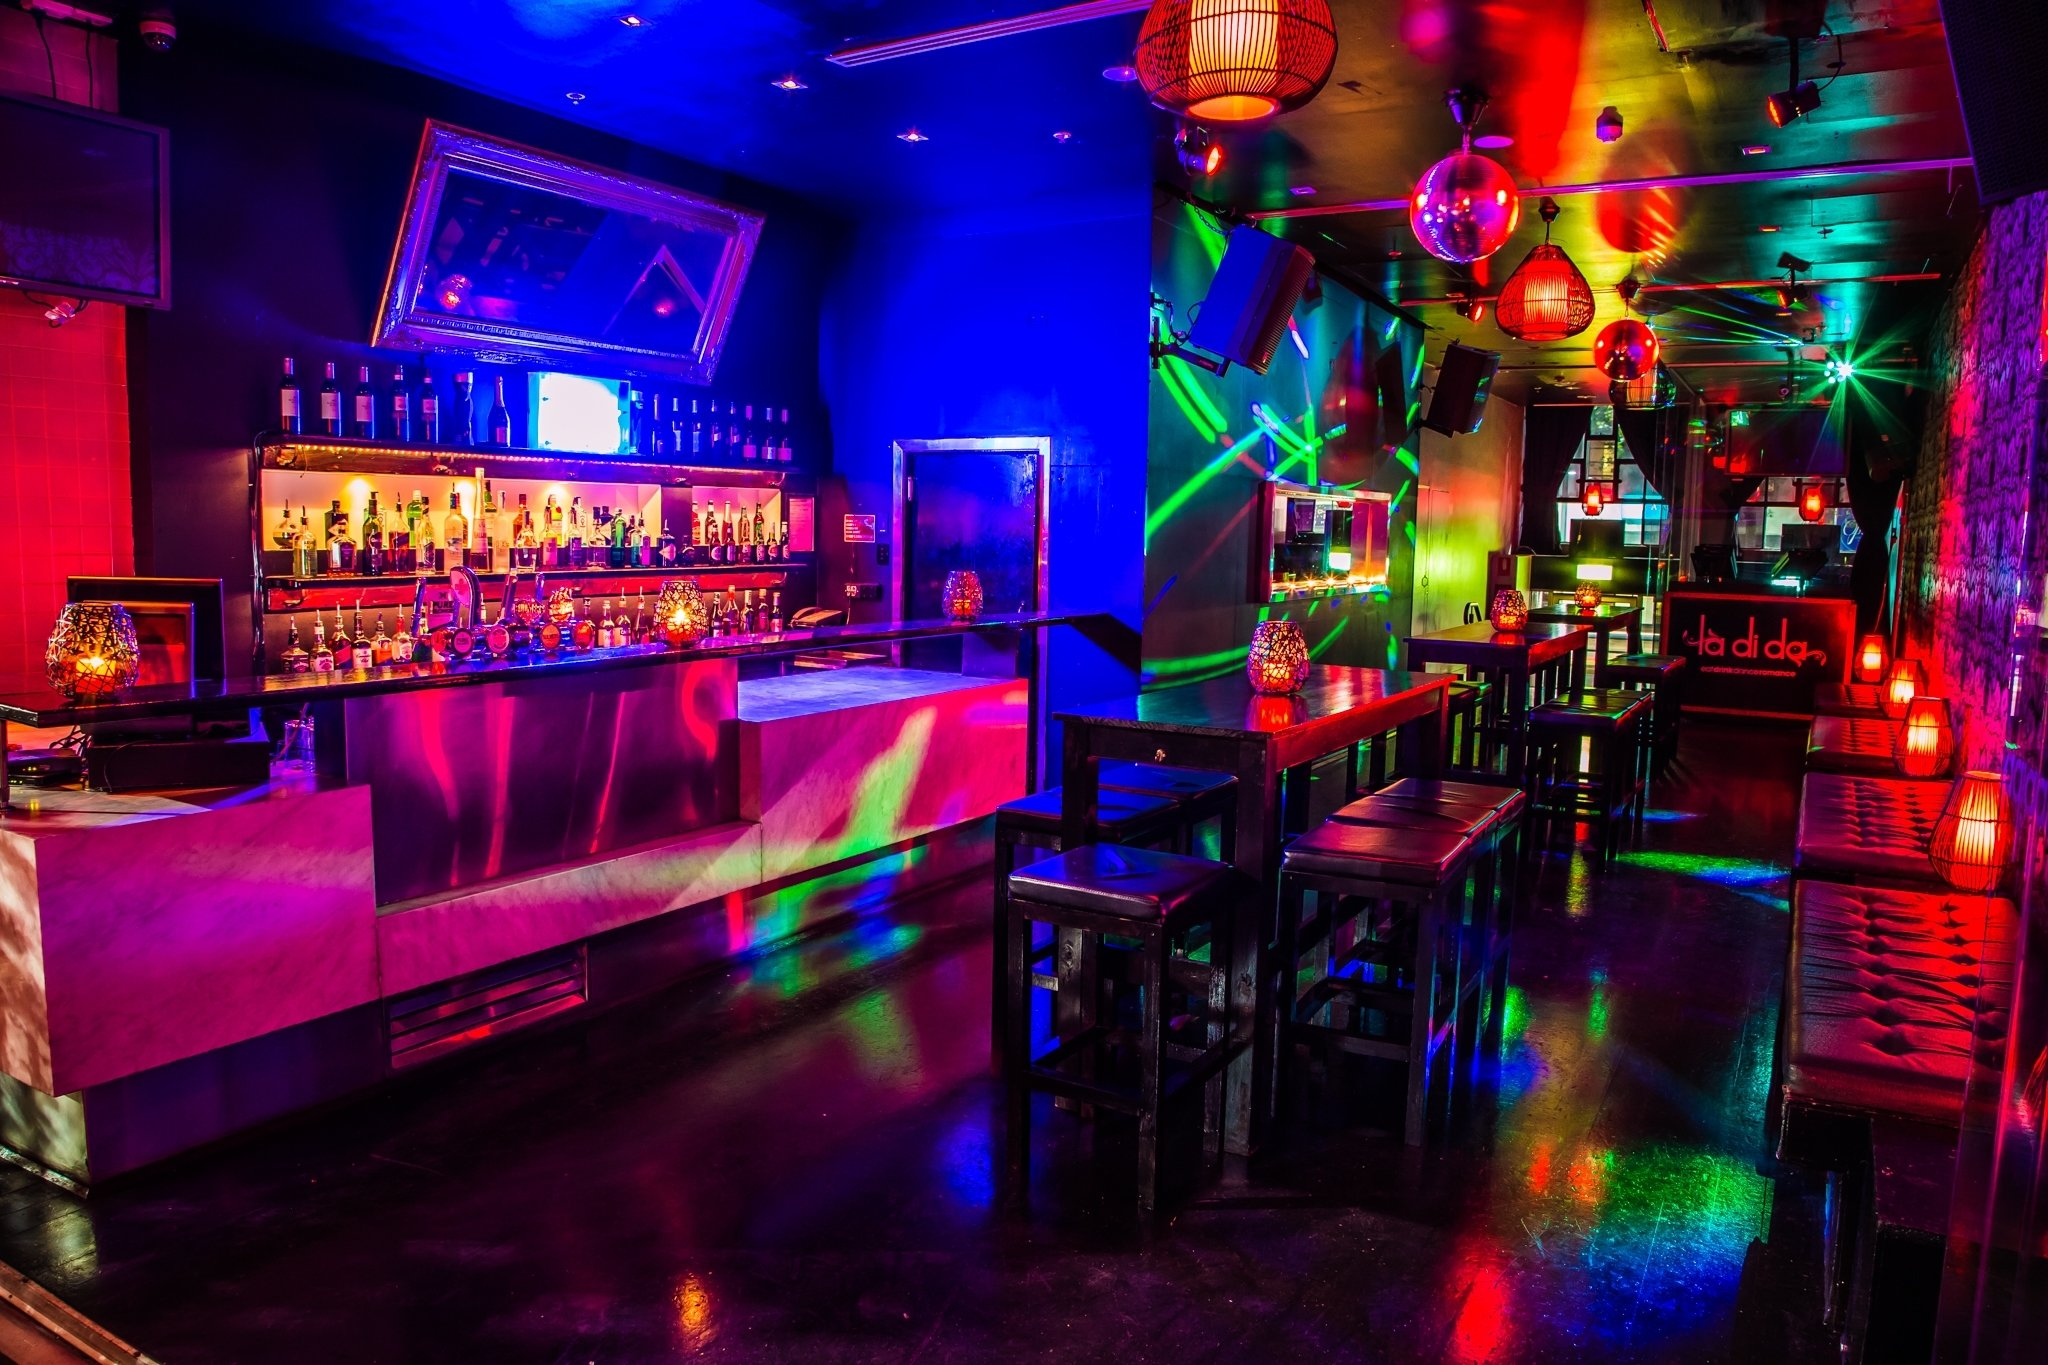 21st birthday parties melbourne @ la di da | 21st birthday venues